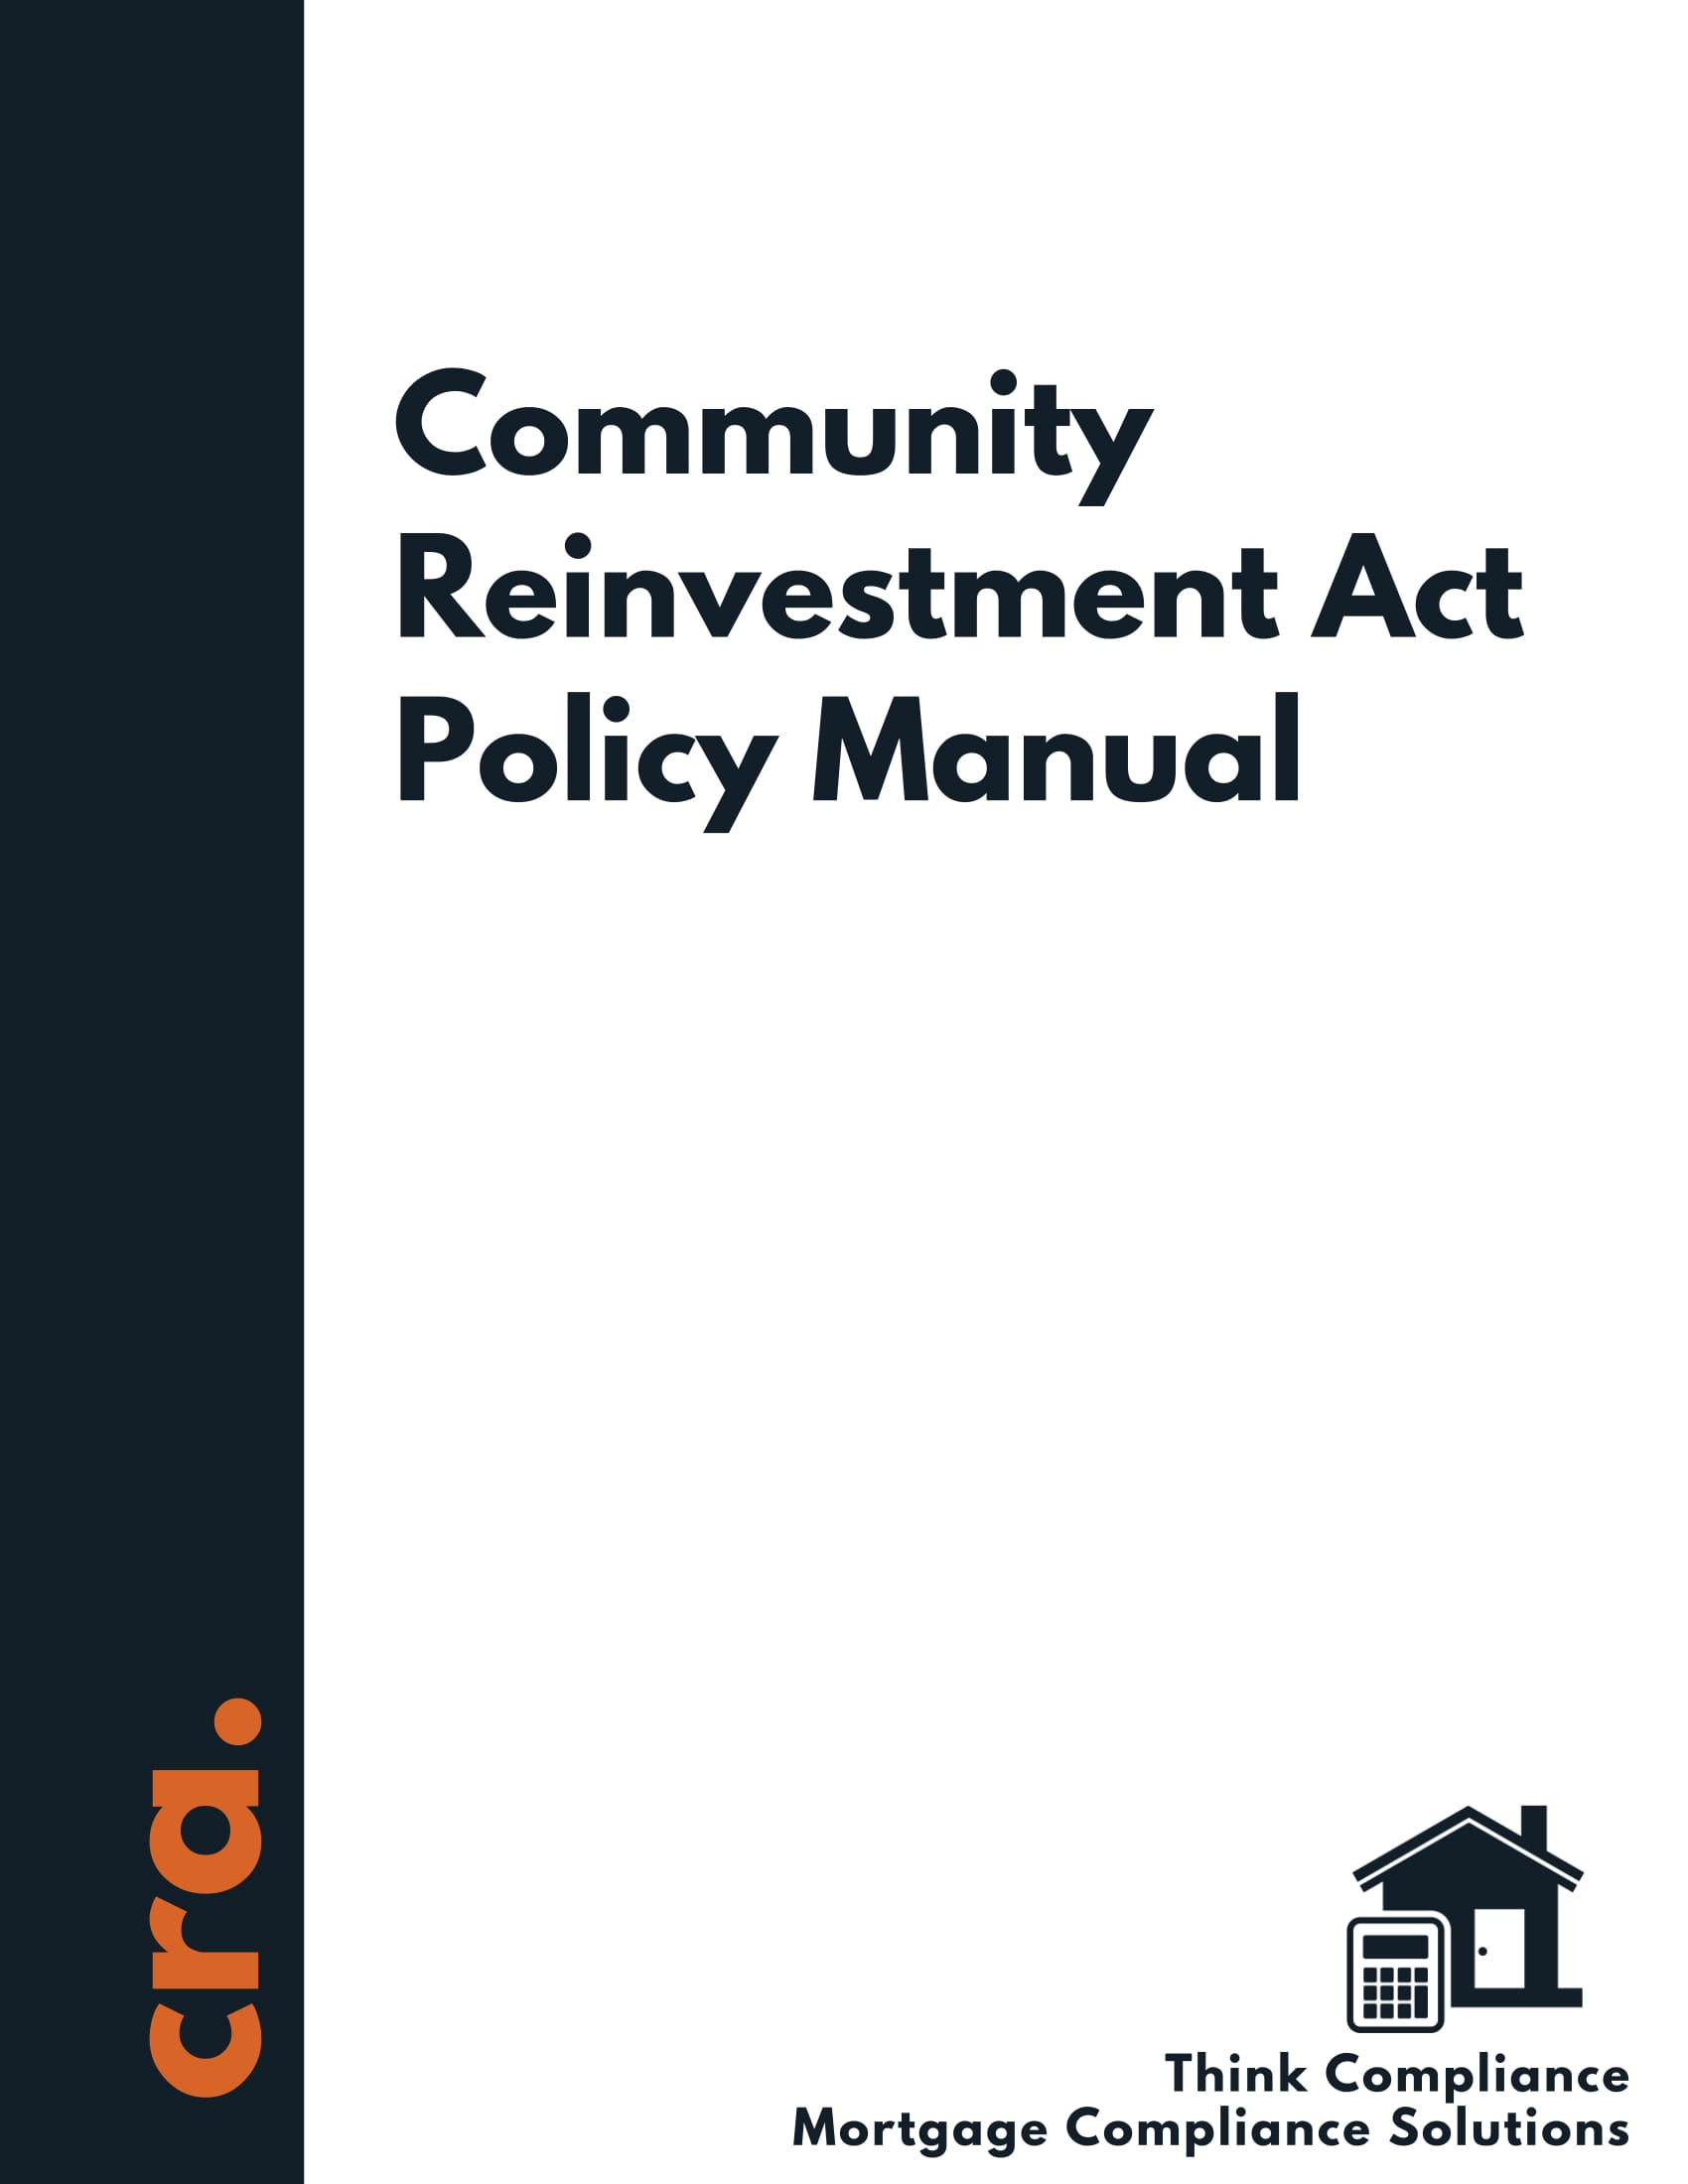 Community Reinvestment Act Policy Manual